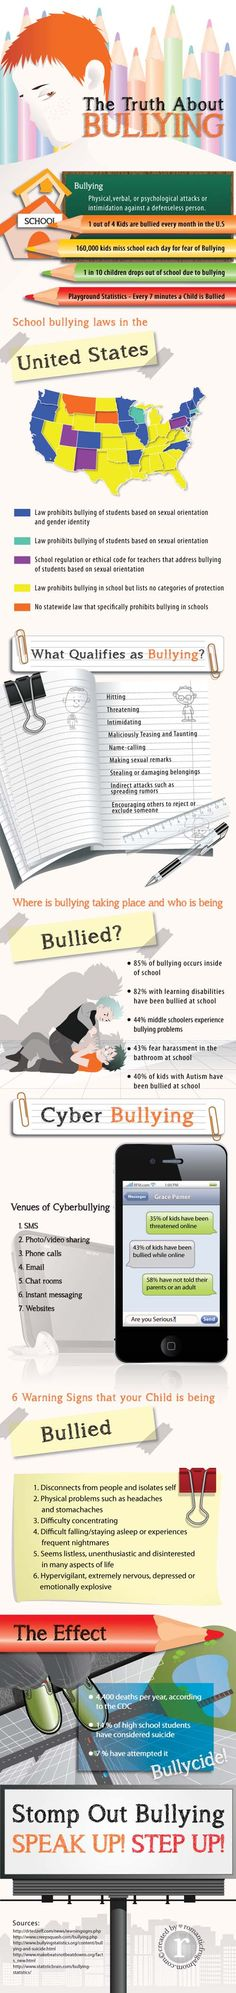 The Definition, Means, And Effects Of Bullying